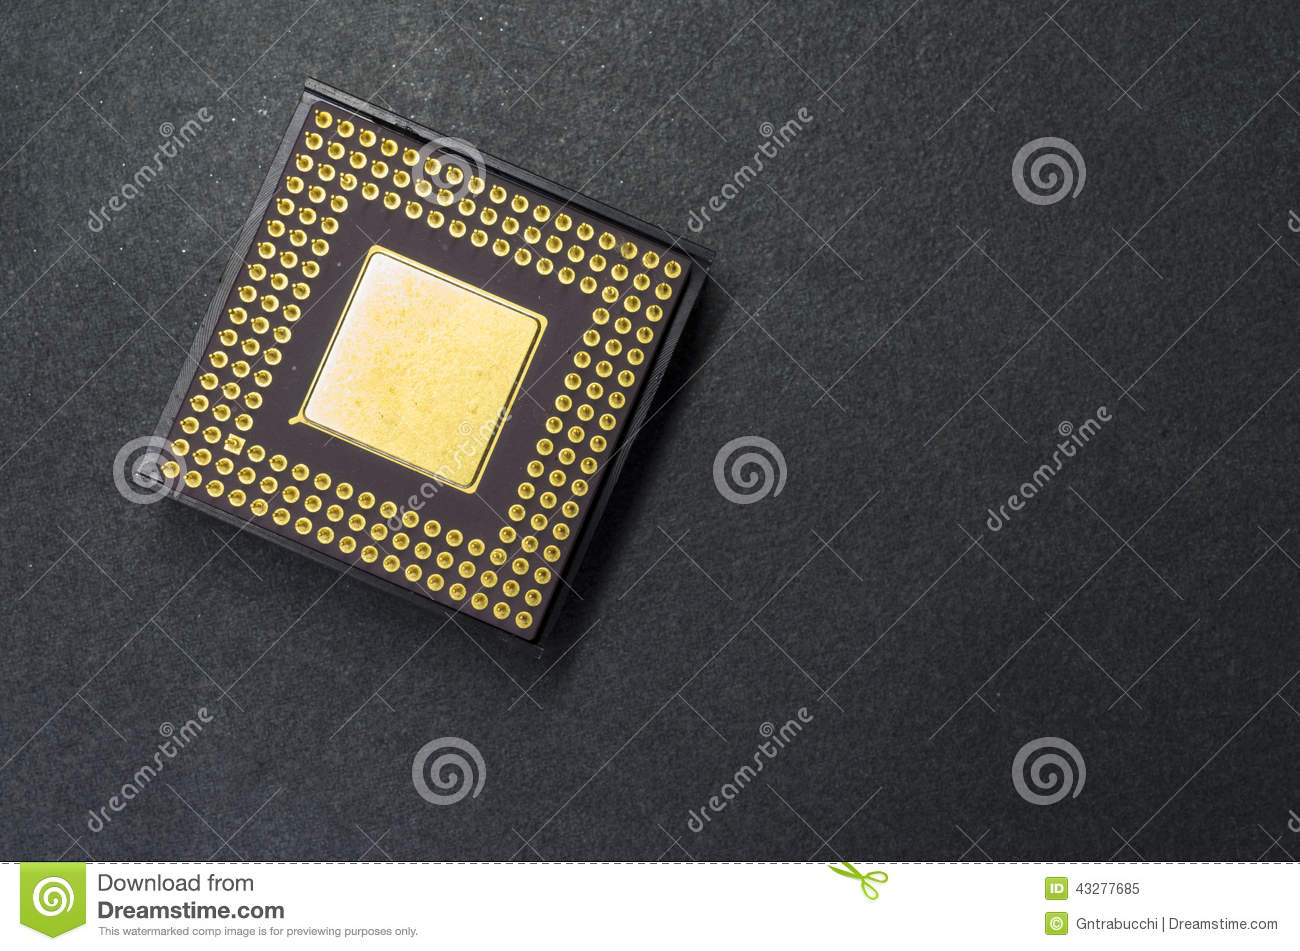 Microprocessor Stock Image Of Electronic Circuit Symbols Integrated Components Component Close Up